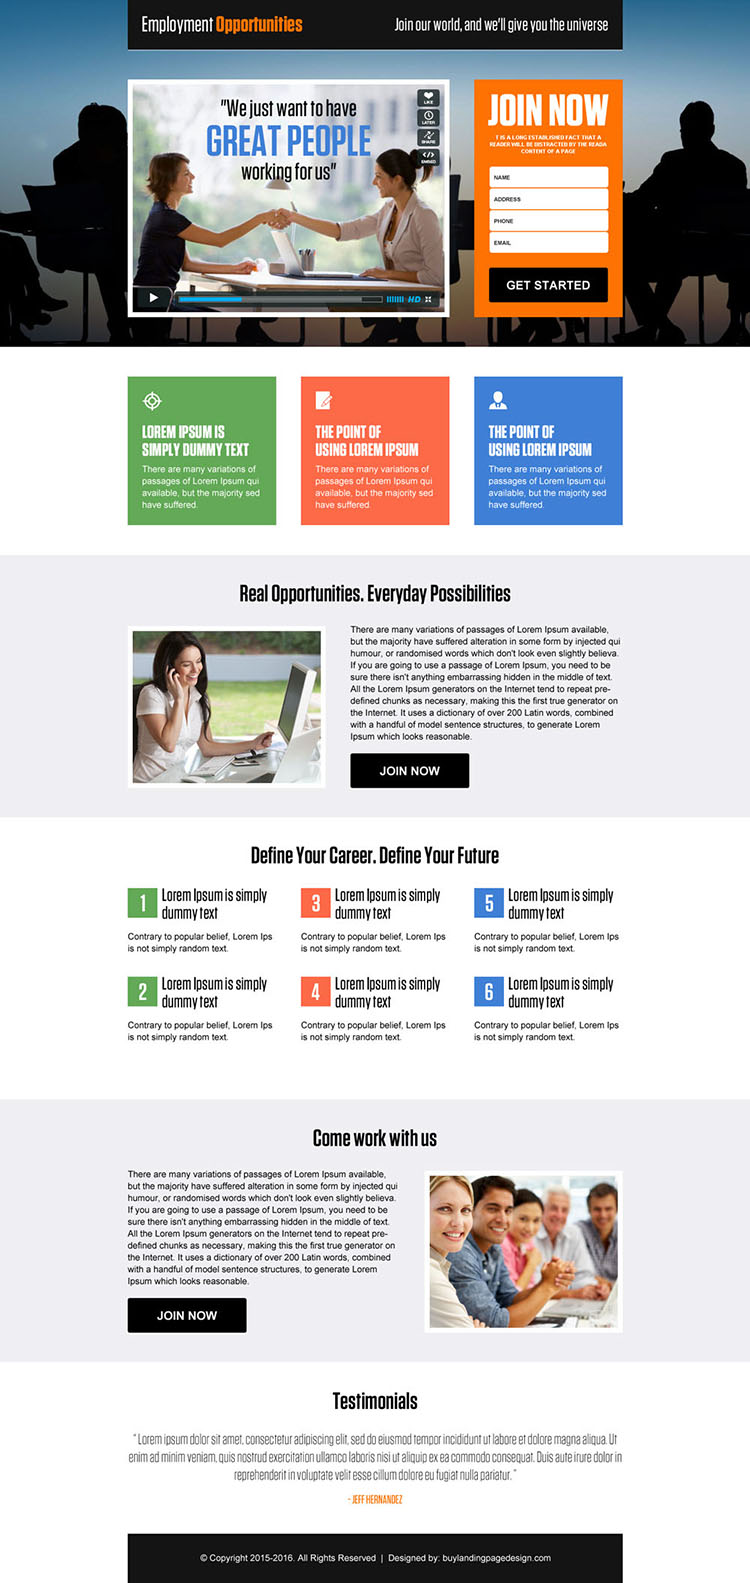 employment opportunities video responsive lead capture landing page design